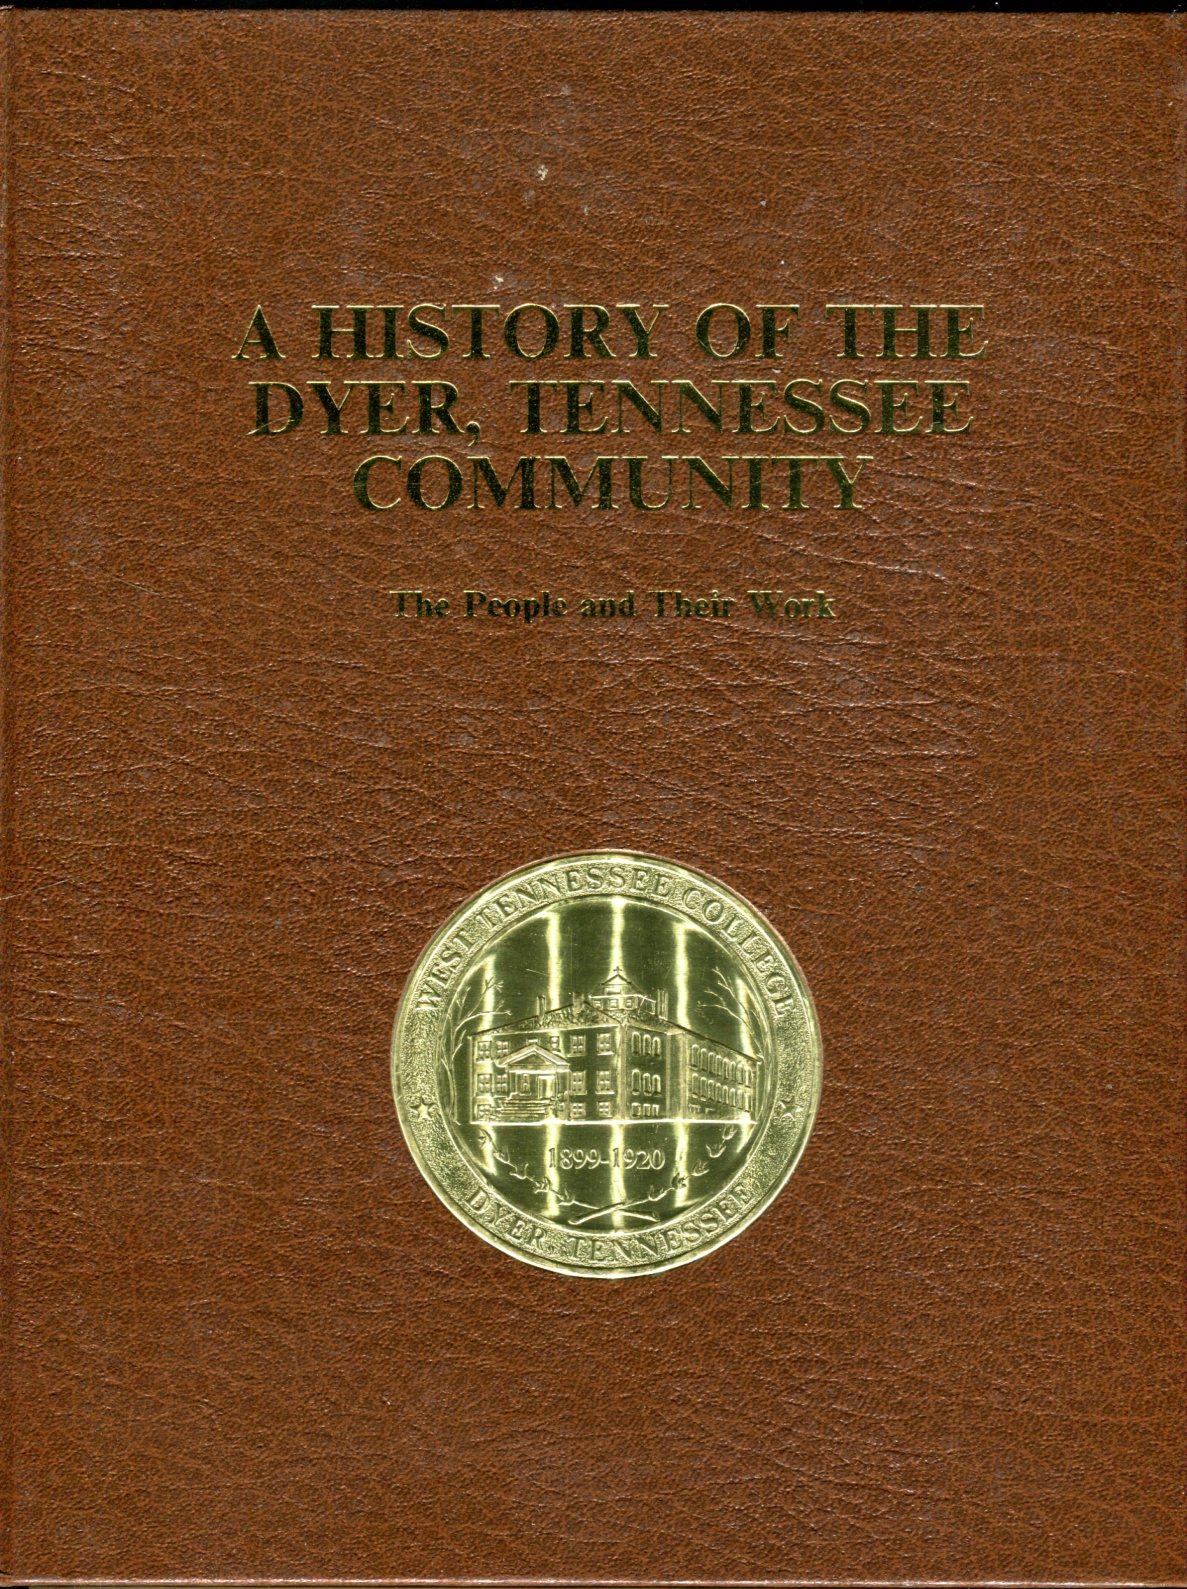 Image for A History of the Dyer, Tennessee Community: The People and Their Work